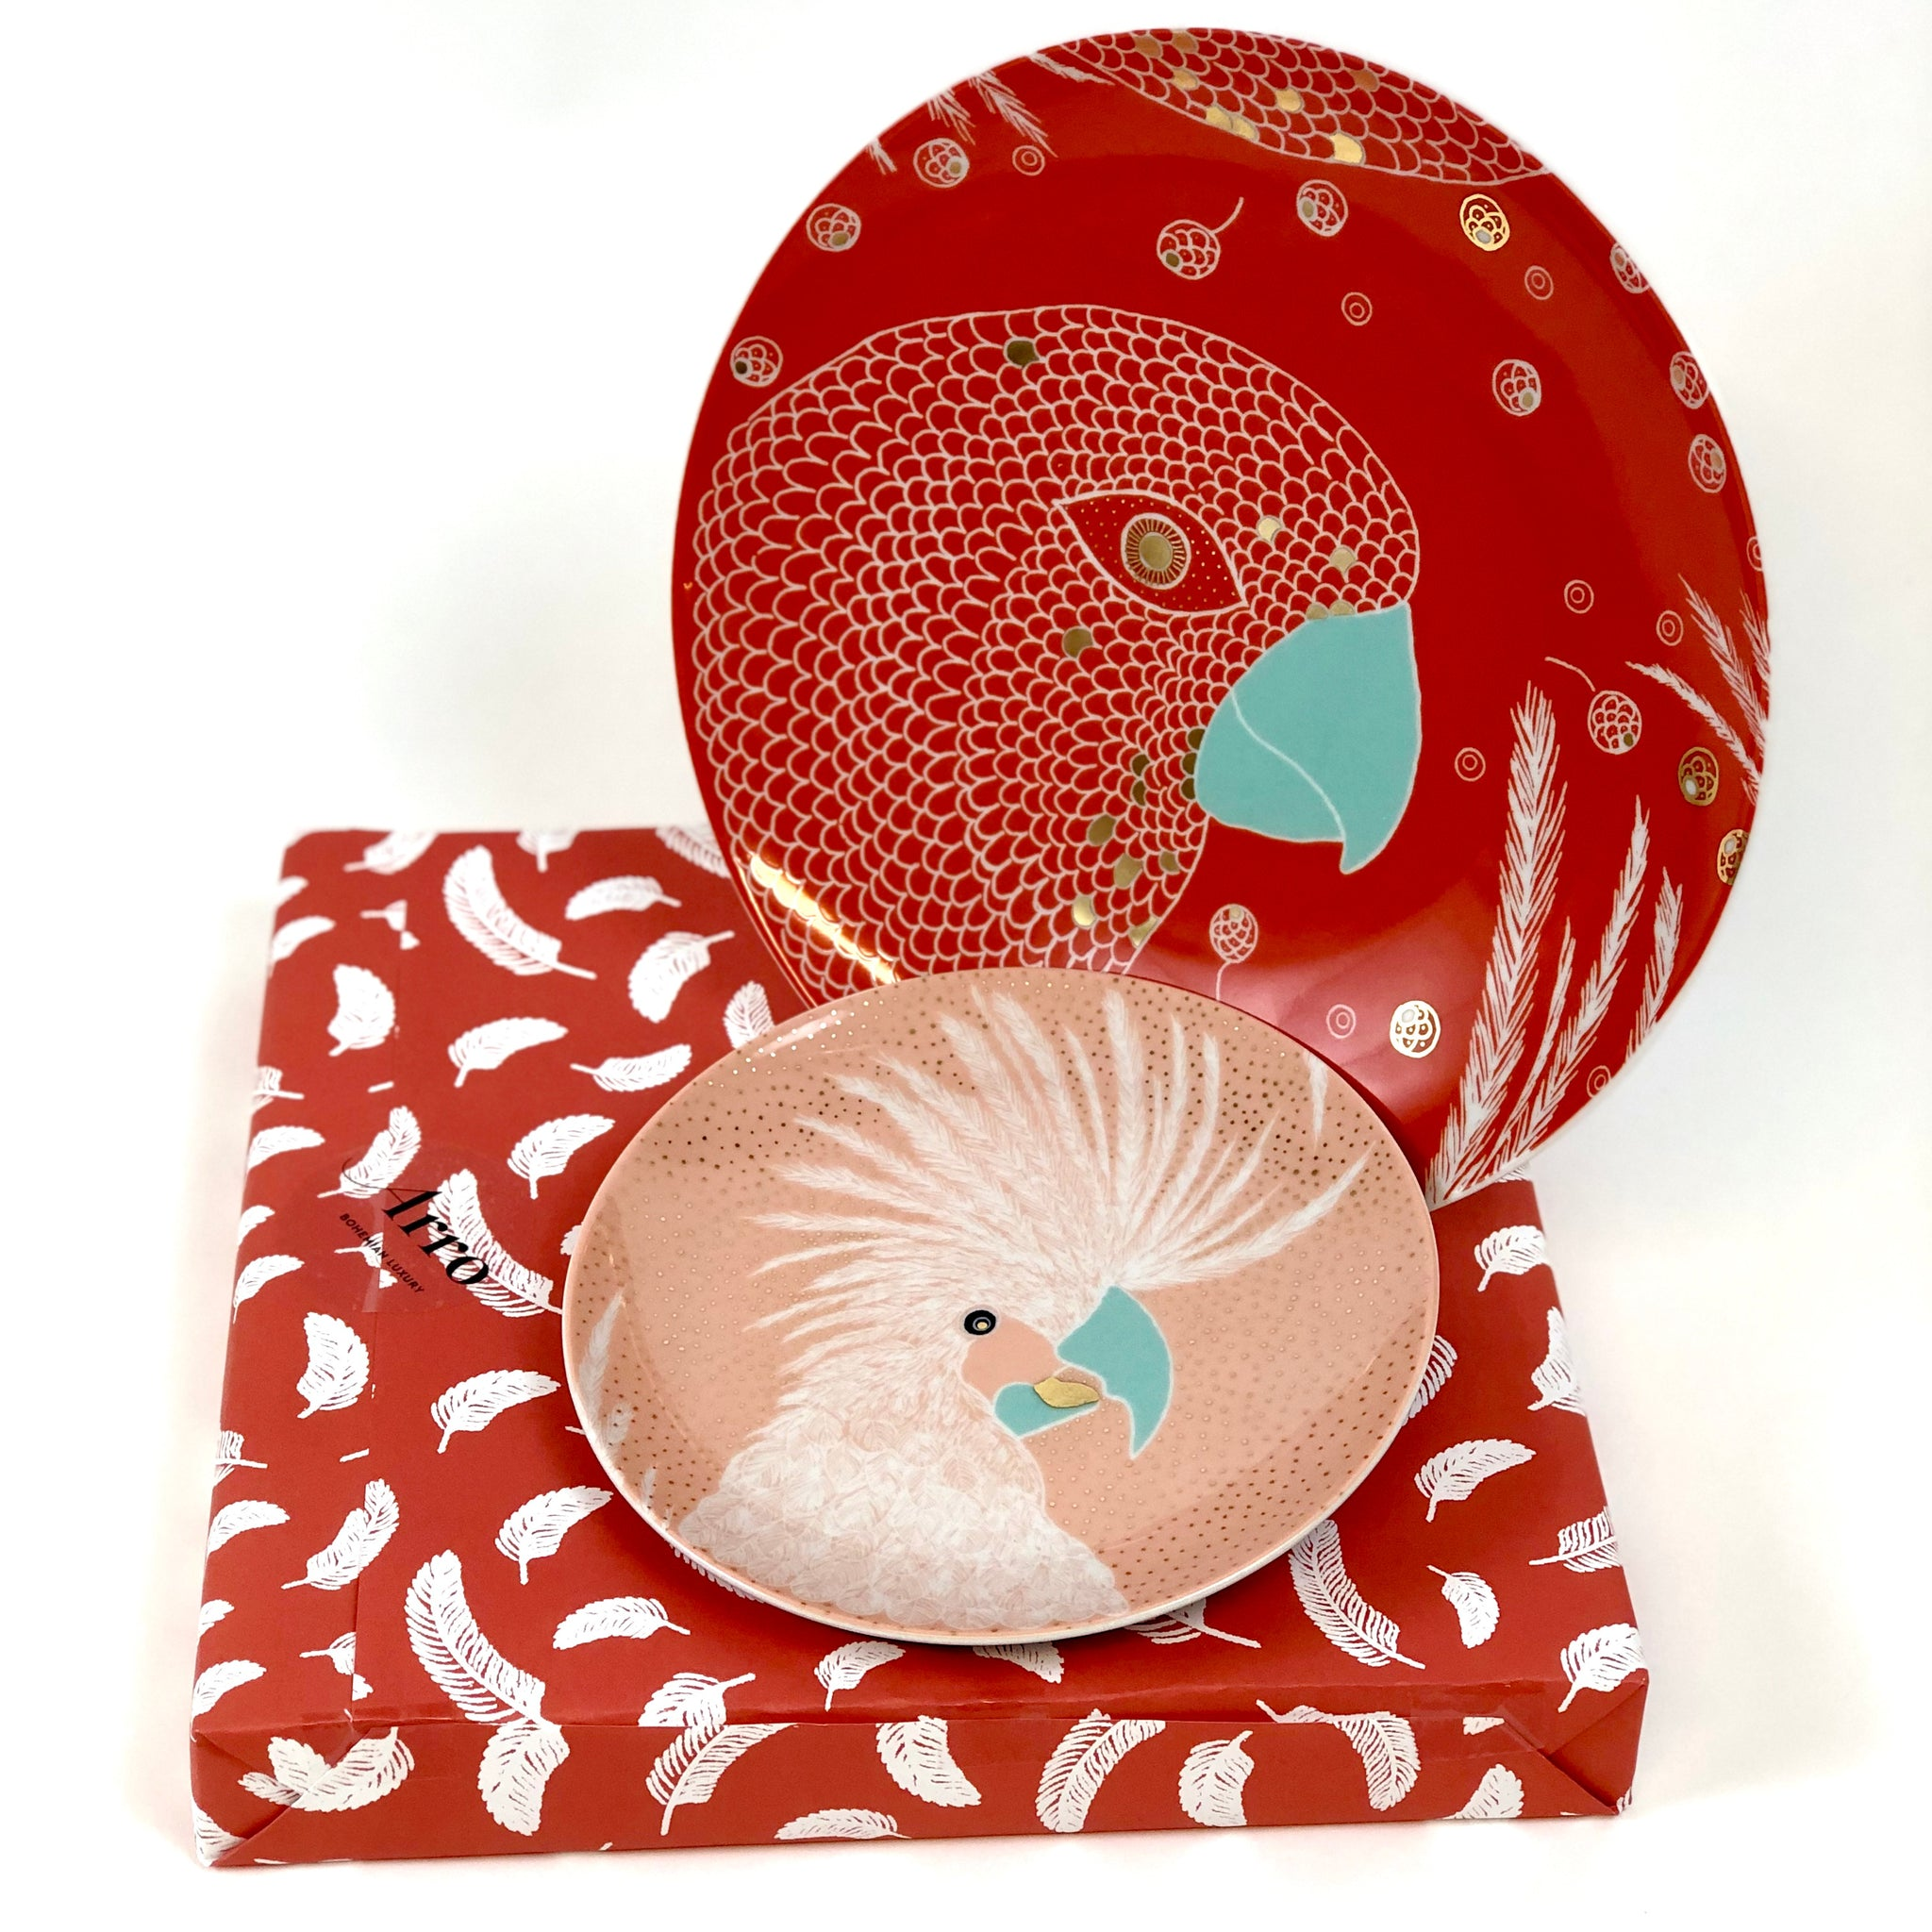 Giftwrapped red dinner plate and pink dessert plate